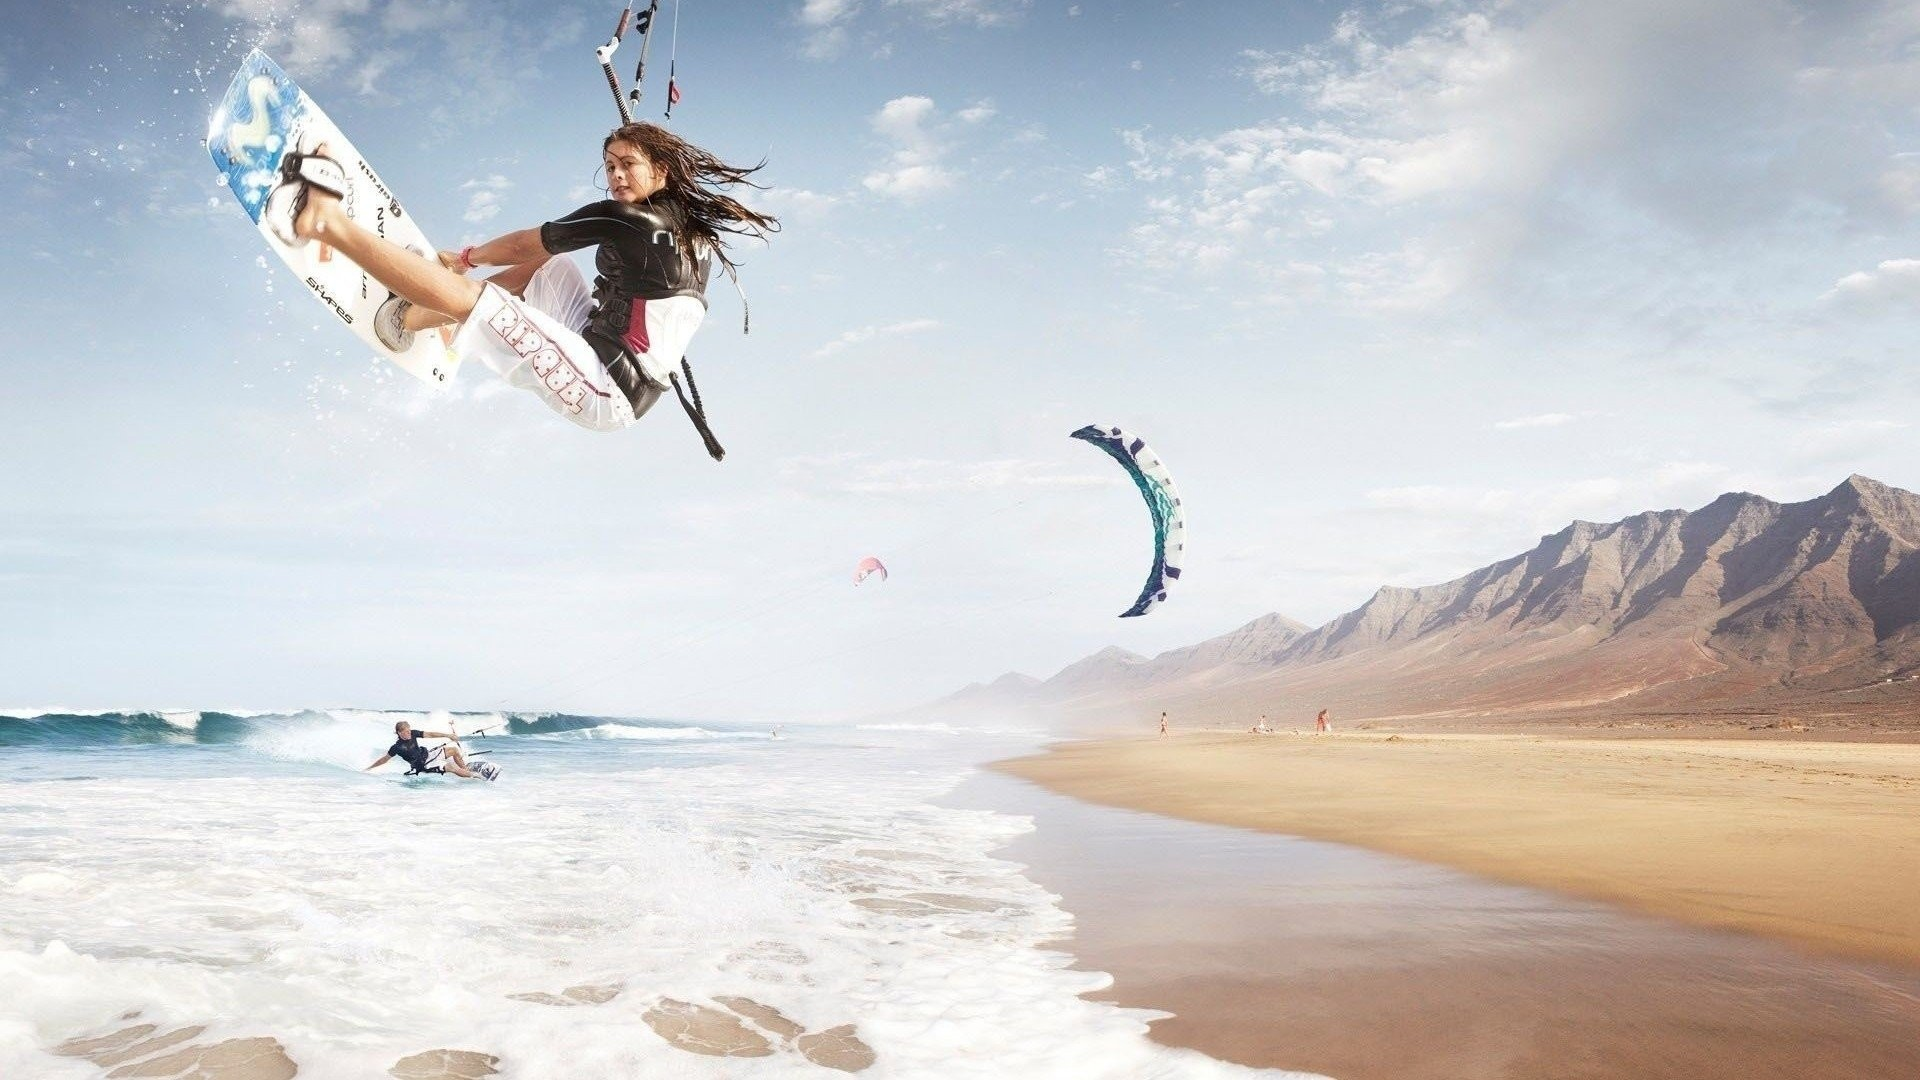 Res: 1920x1080, Surfing Girls Images HD Wallpapers